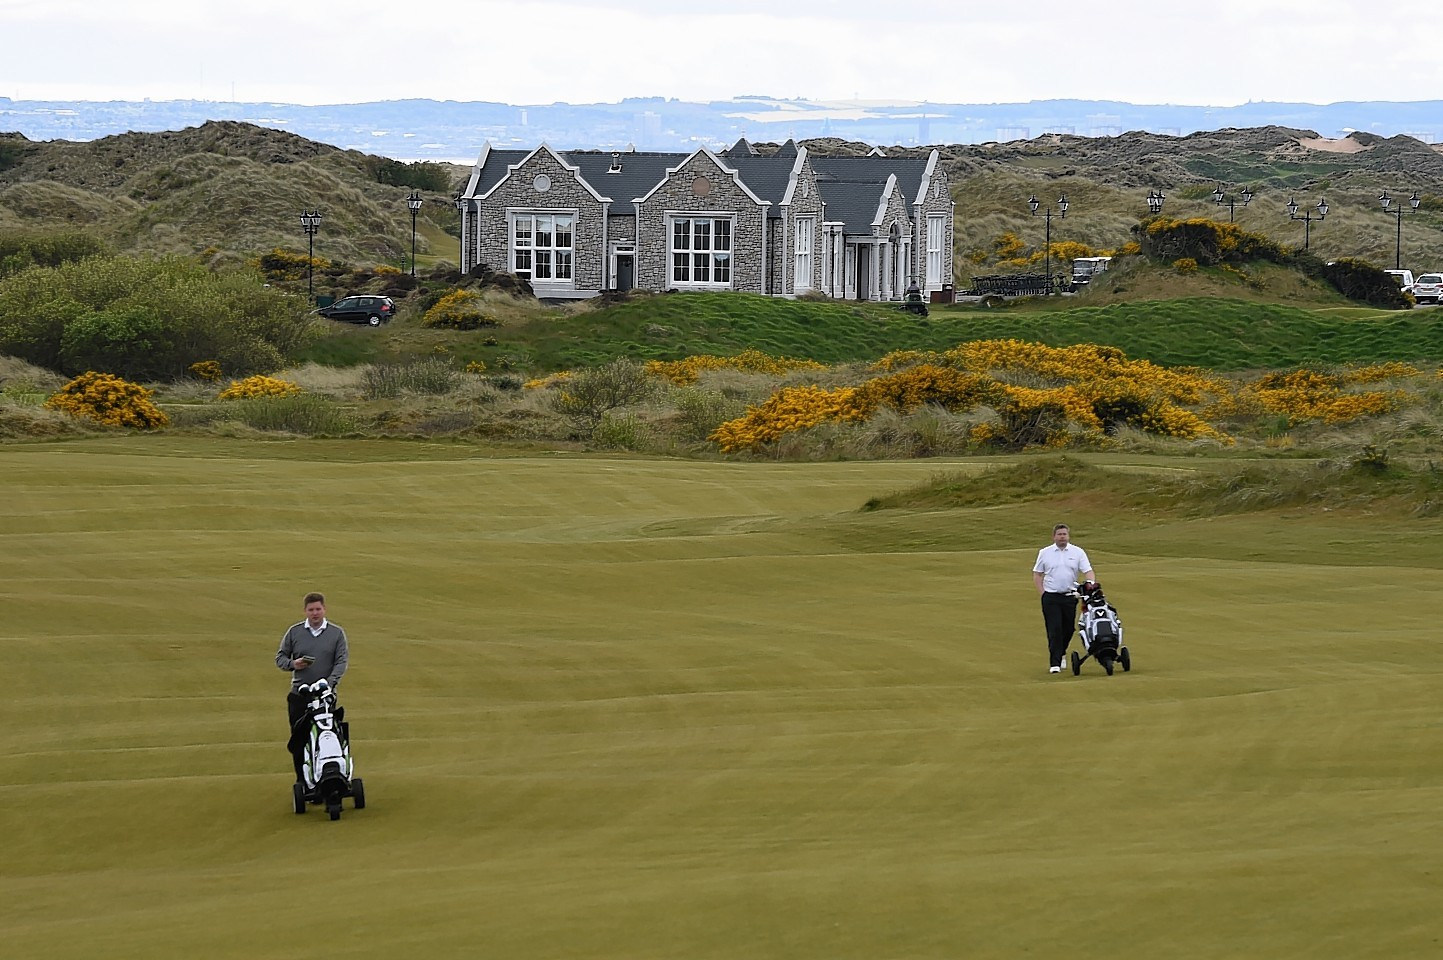 Donald Trump's Balmedie golf course to host Scottish Open ...